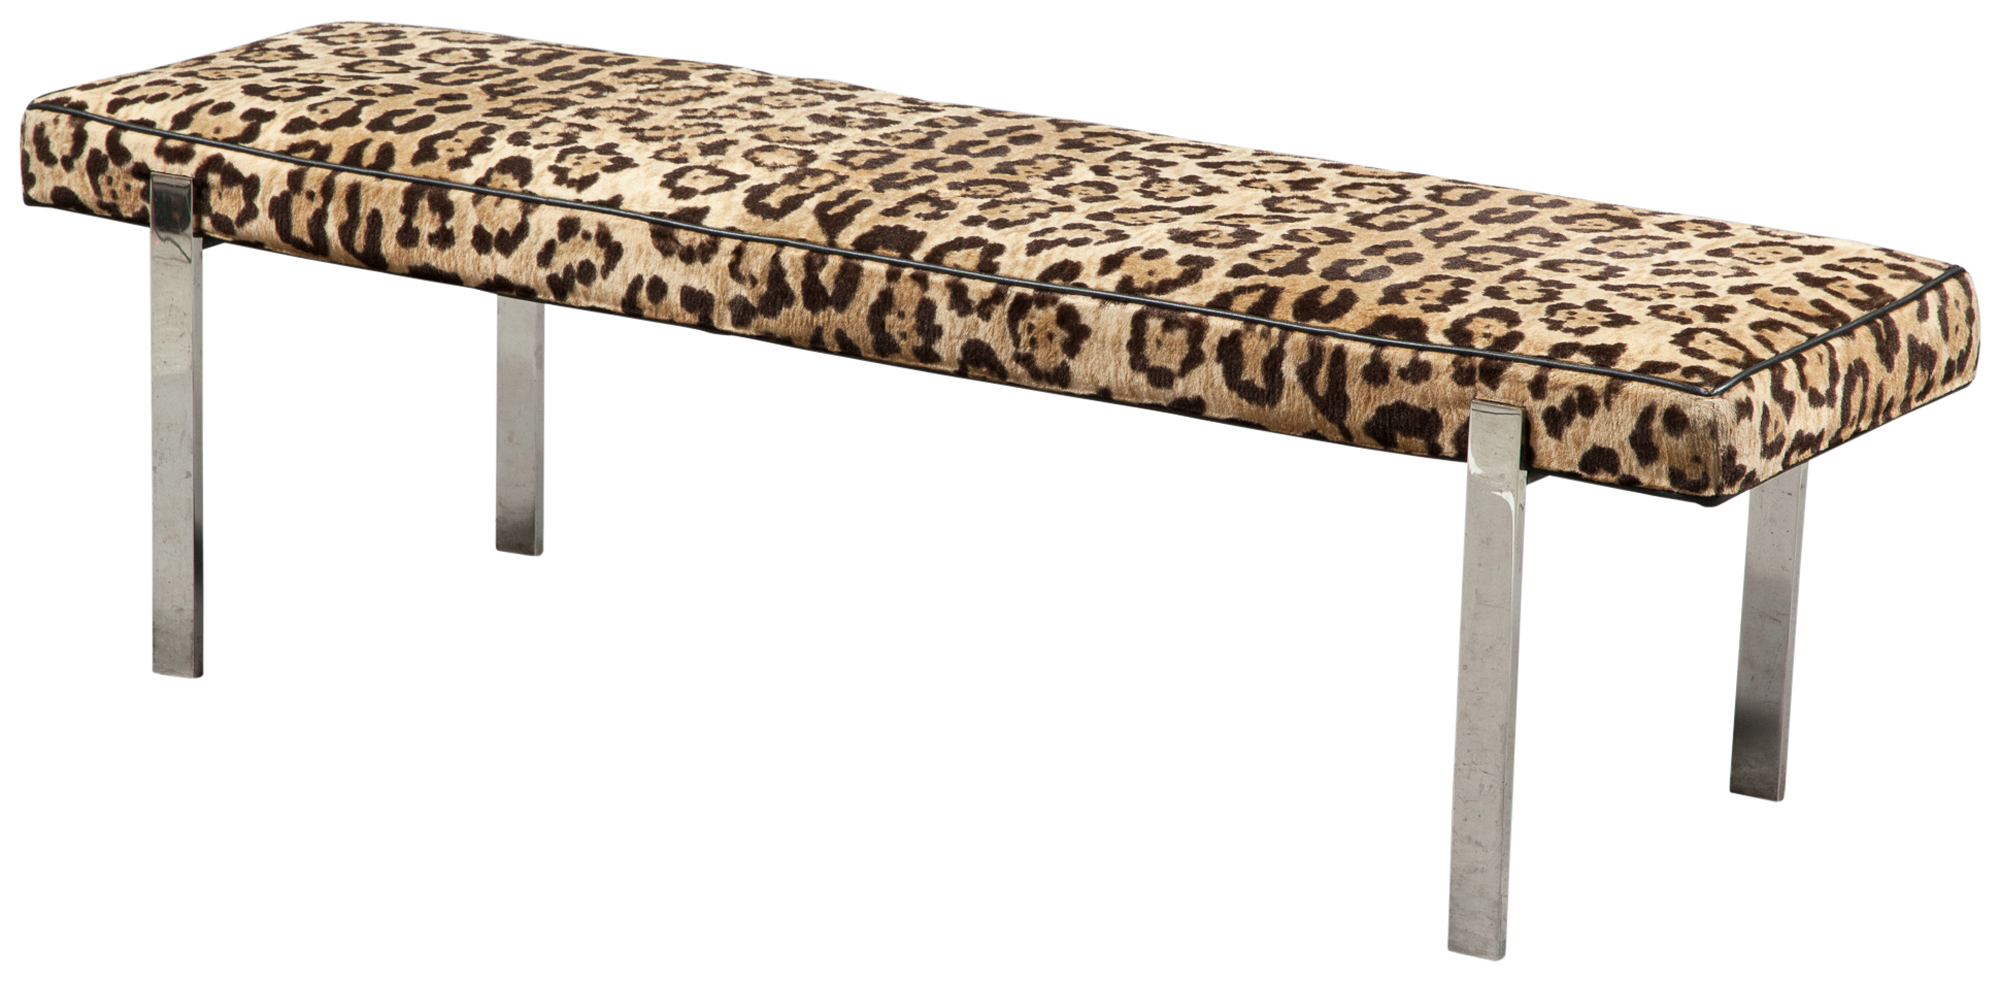 Lot image - Leopard Print Upholstered Chrome Bench